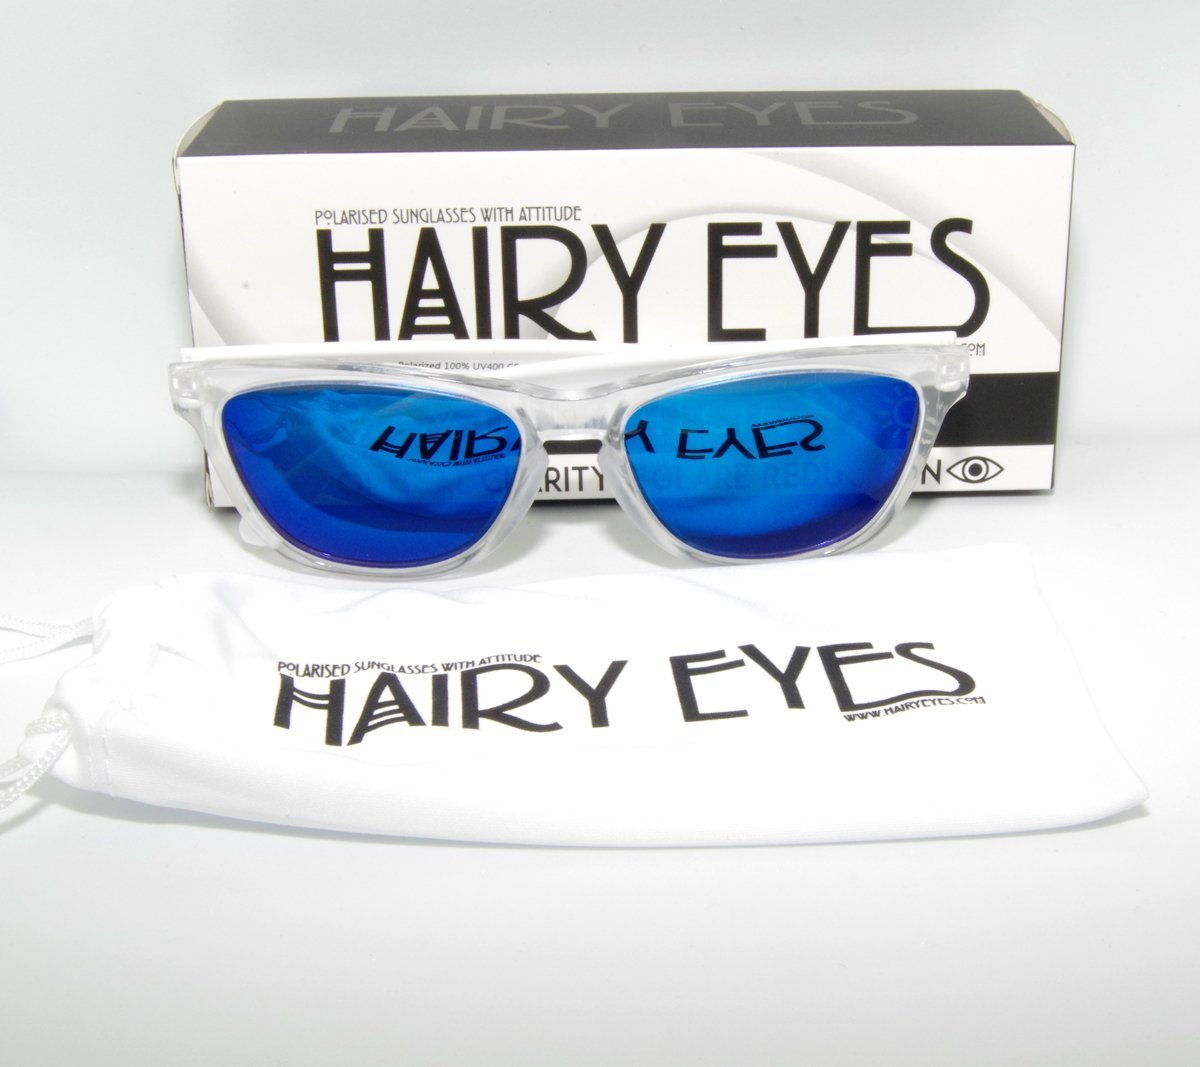 Blue Moon,Sunglasses,Hairy Eyes - Polarised Sunglasses with Attitude,Hairy Eyes - Polarised Sunglasses with Attitude #hairyeyes #hairyeyes sunglasses #sunglasses  #sunglasses #shades #sunnies  #hot #summerstyle  #beach #reflection #happy #love  #blueskies #autumn #summer  #fashion #moda  #aspirational